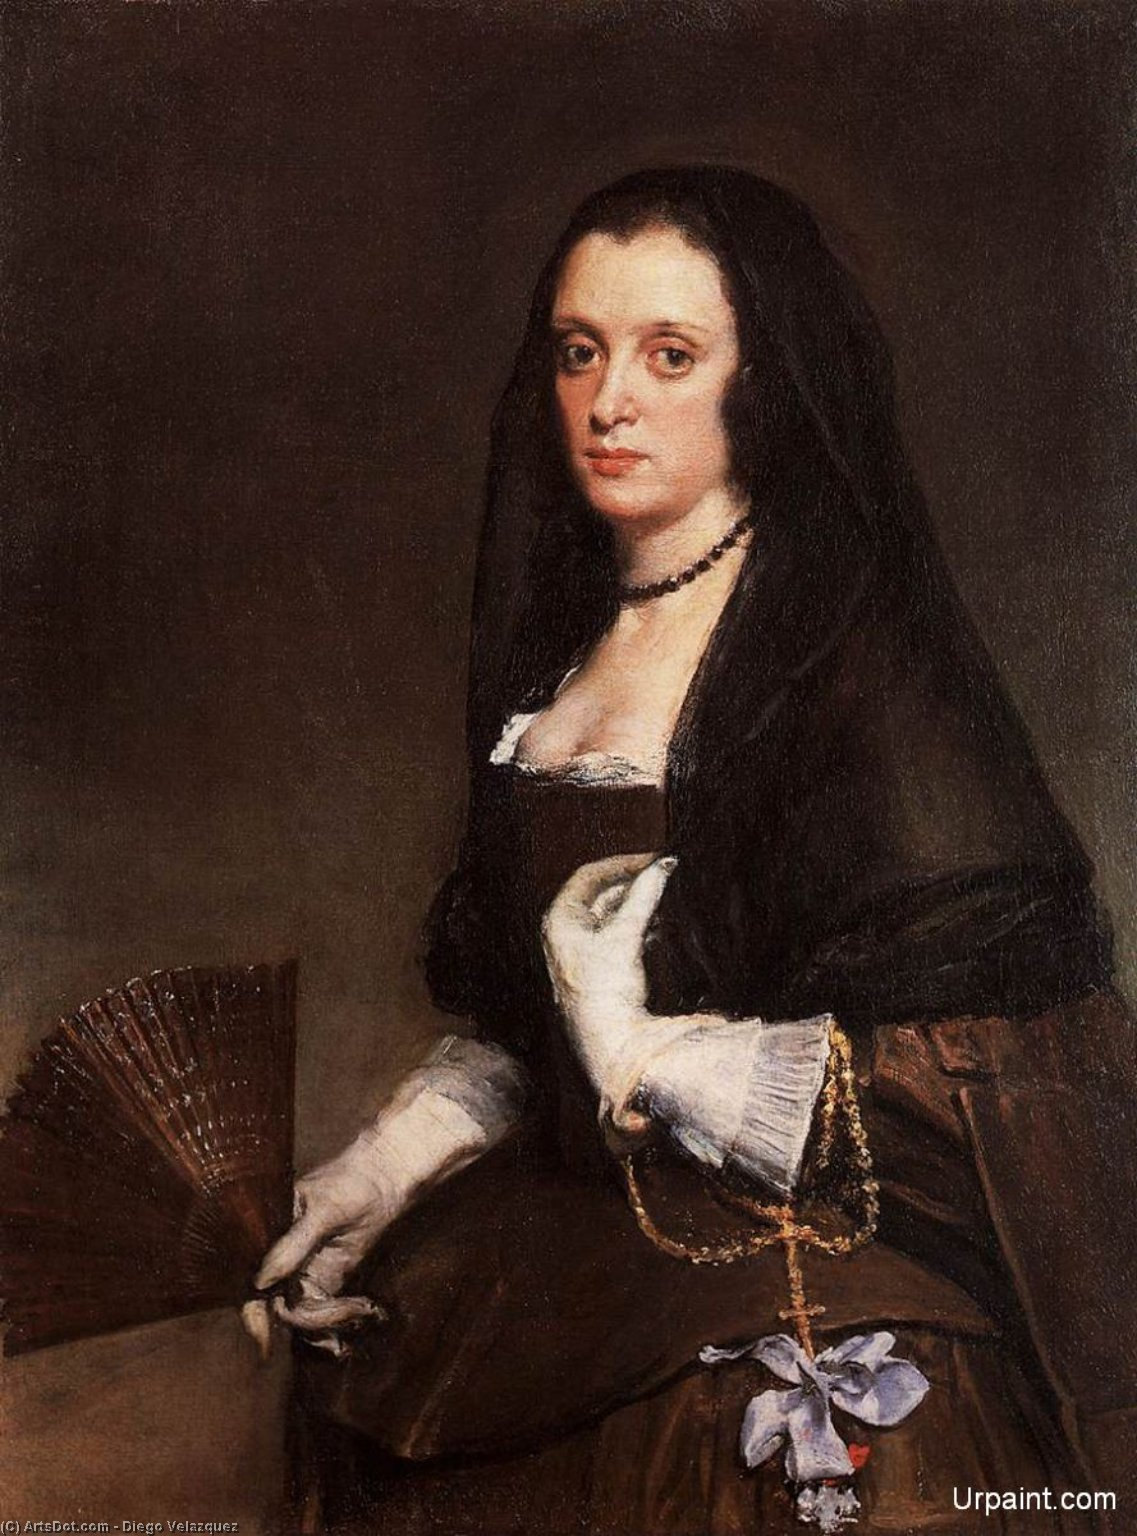 The Lady with a Fan, Oil On Canvas by Diego Velazquez  (order Fine Art Poster on canvas Diego Velazquez)